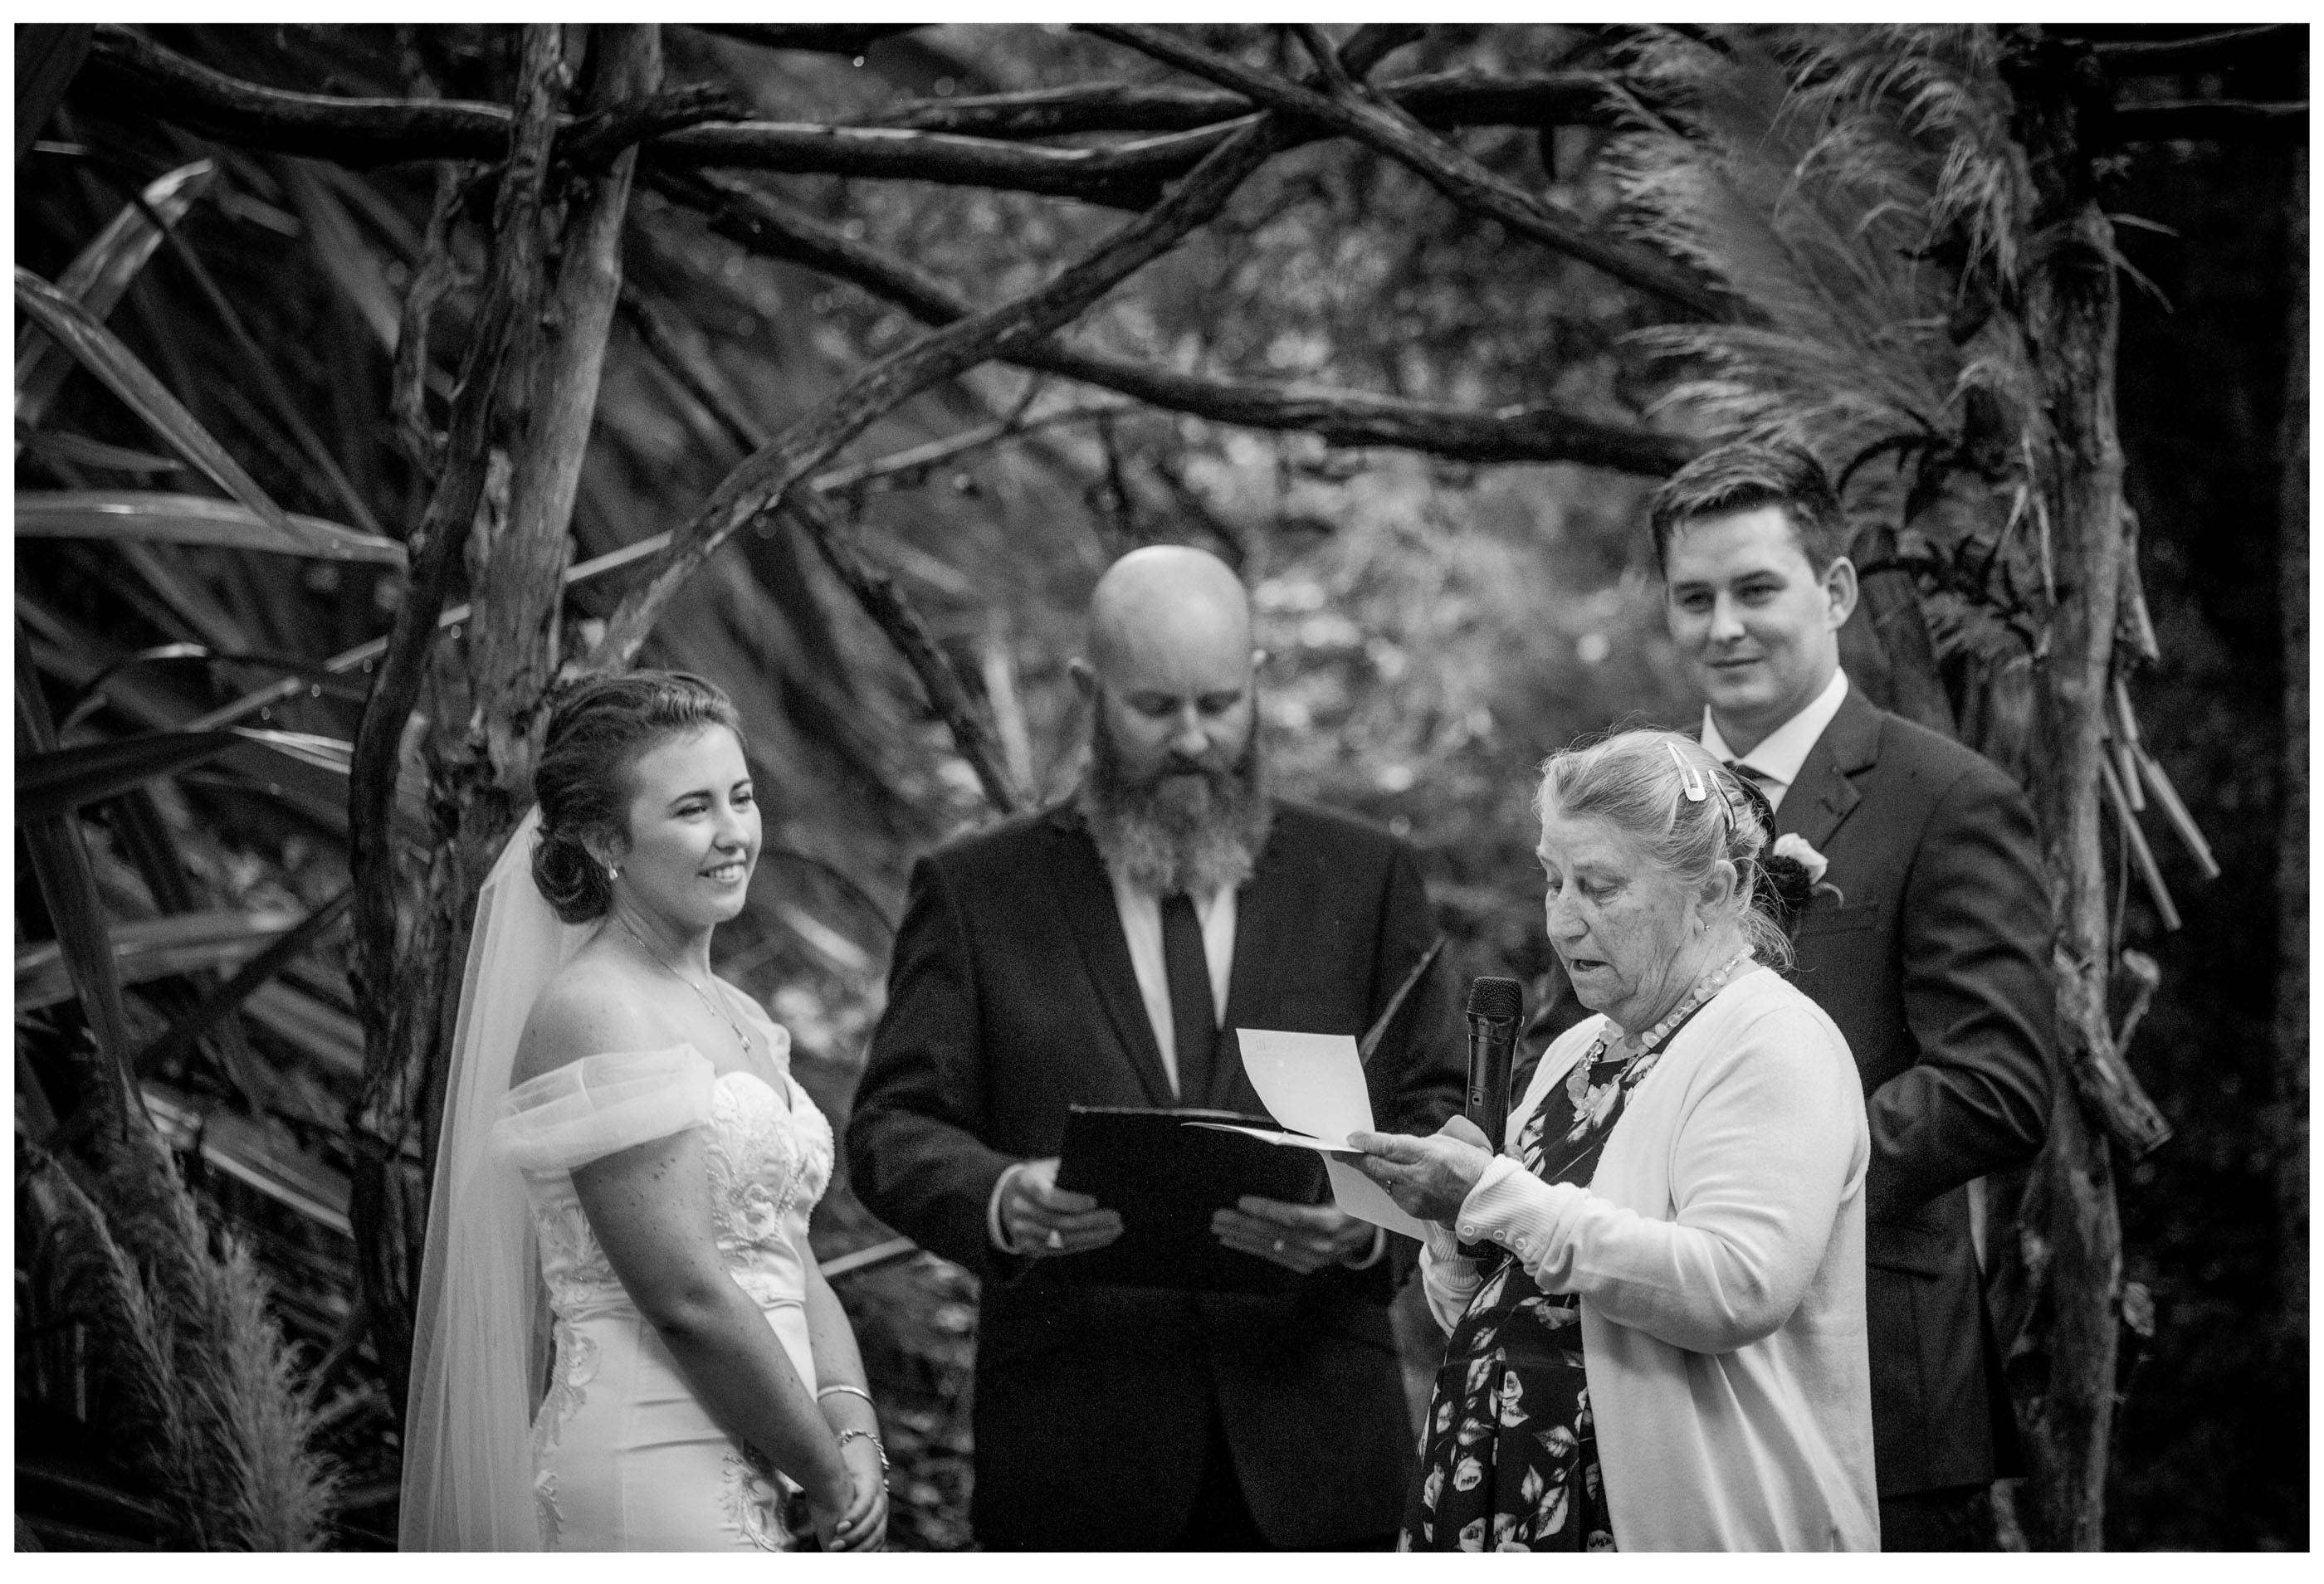 Nana reads poem at outdoor woodland wedding ceremony in kumeu